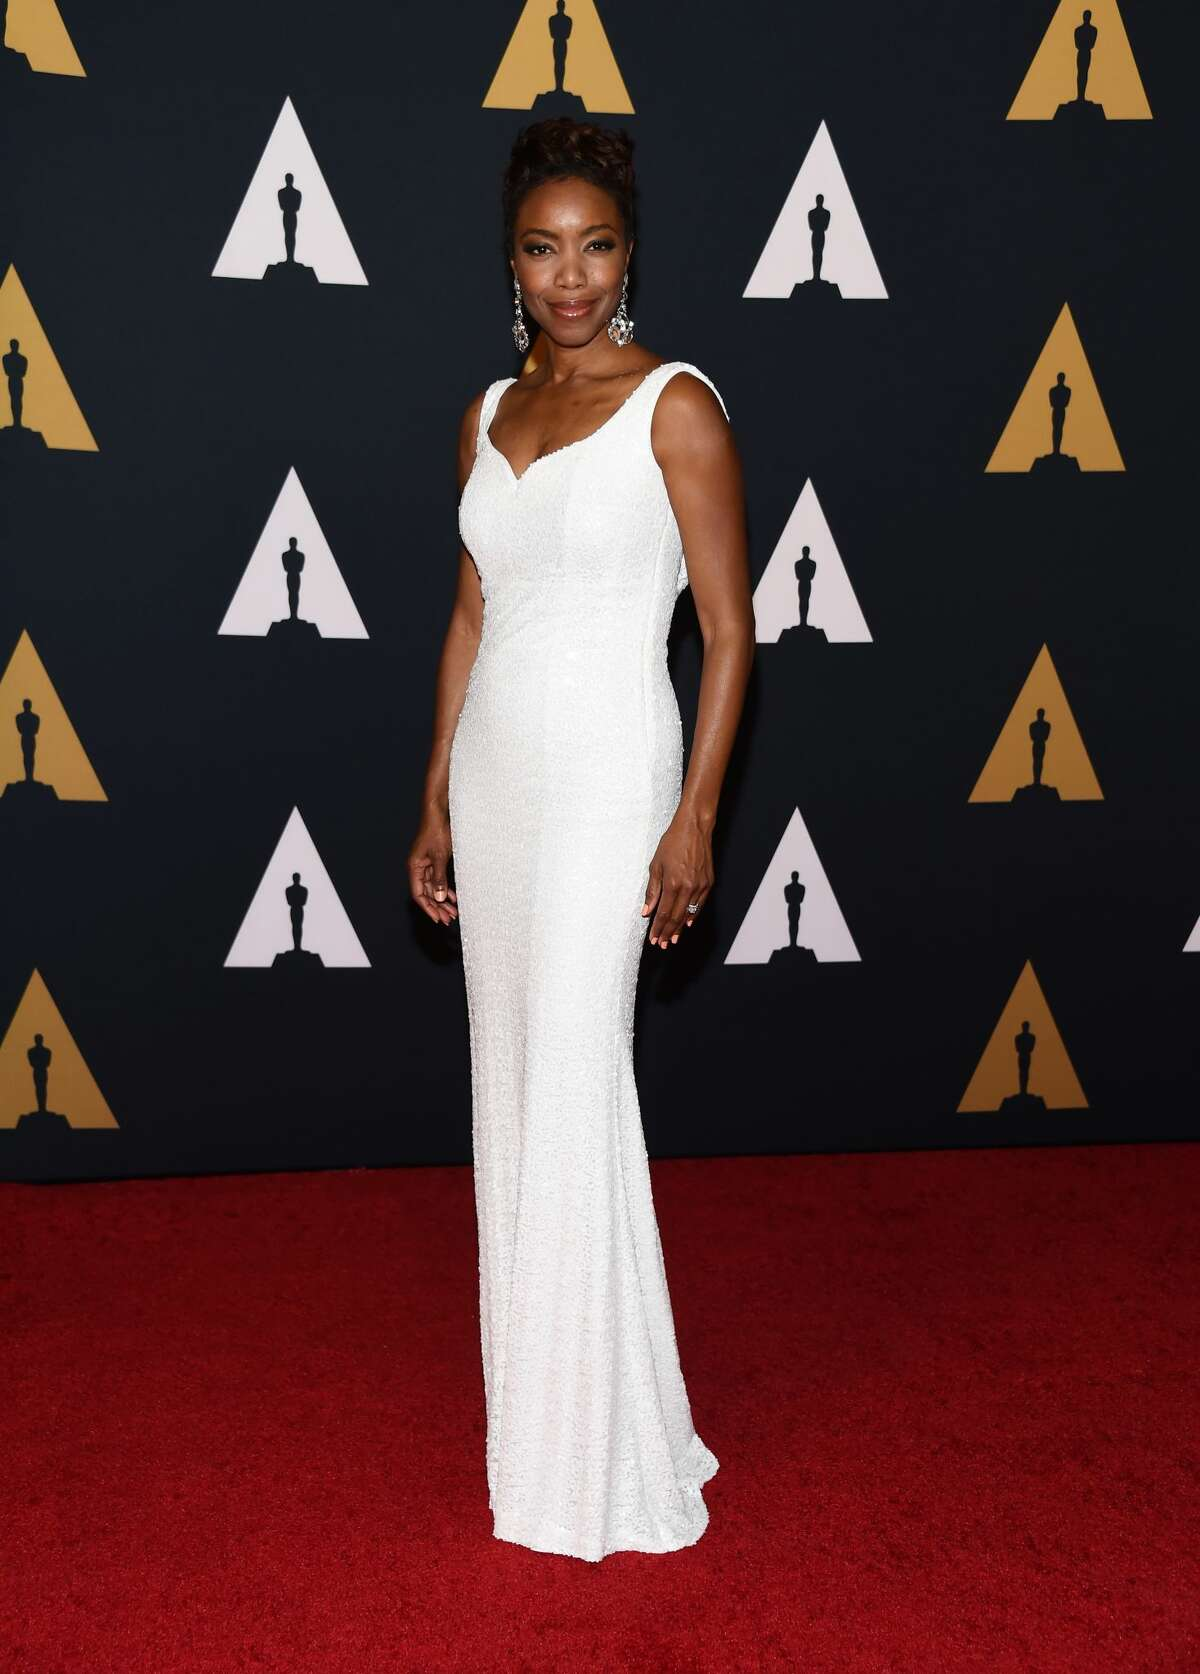 Singer Heather Headley's take on the white gown is classy and glamorous.